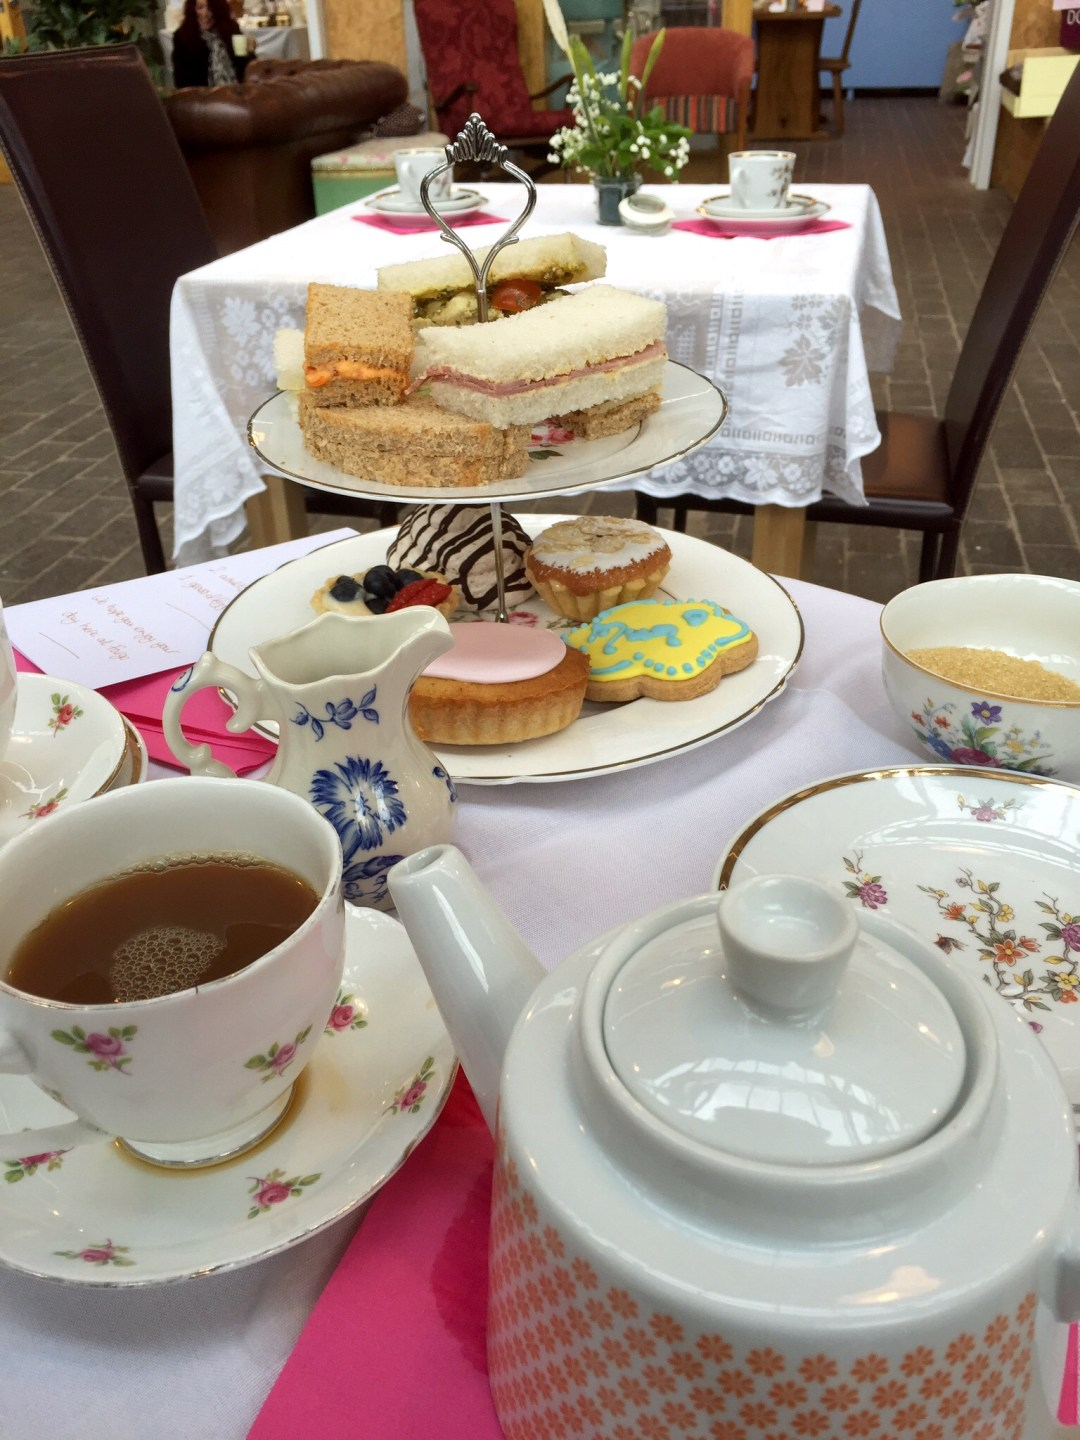 Afternoon tea at Fargo Village